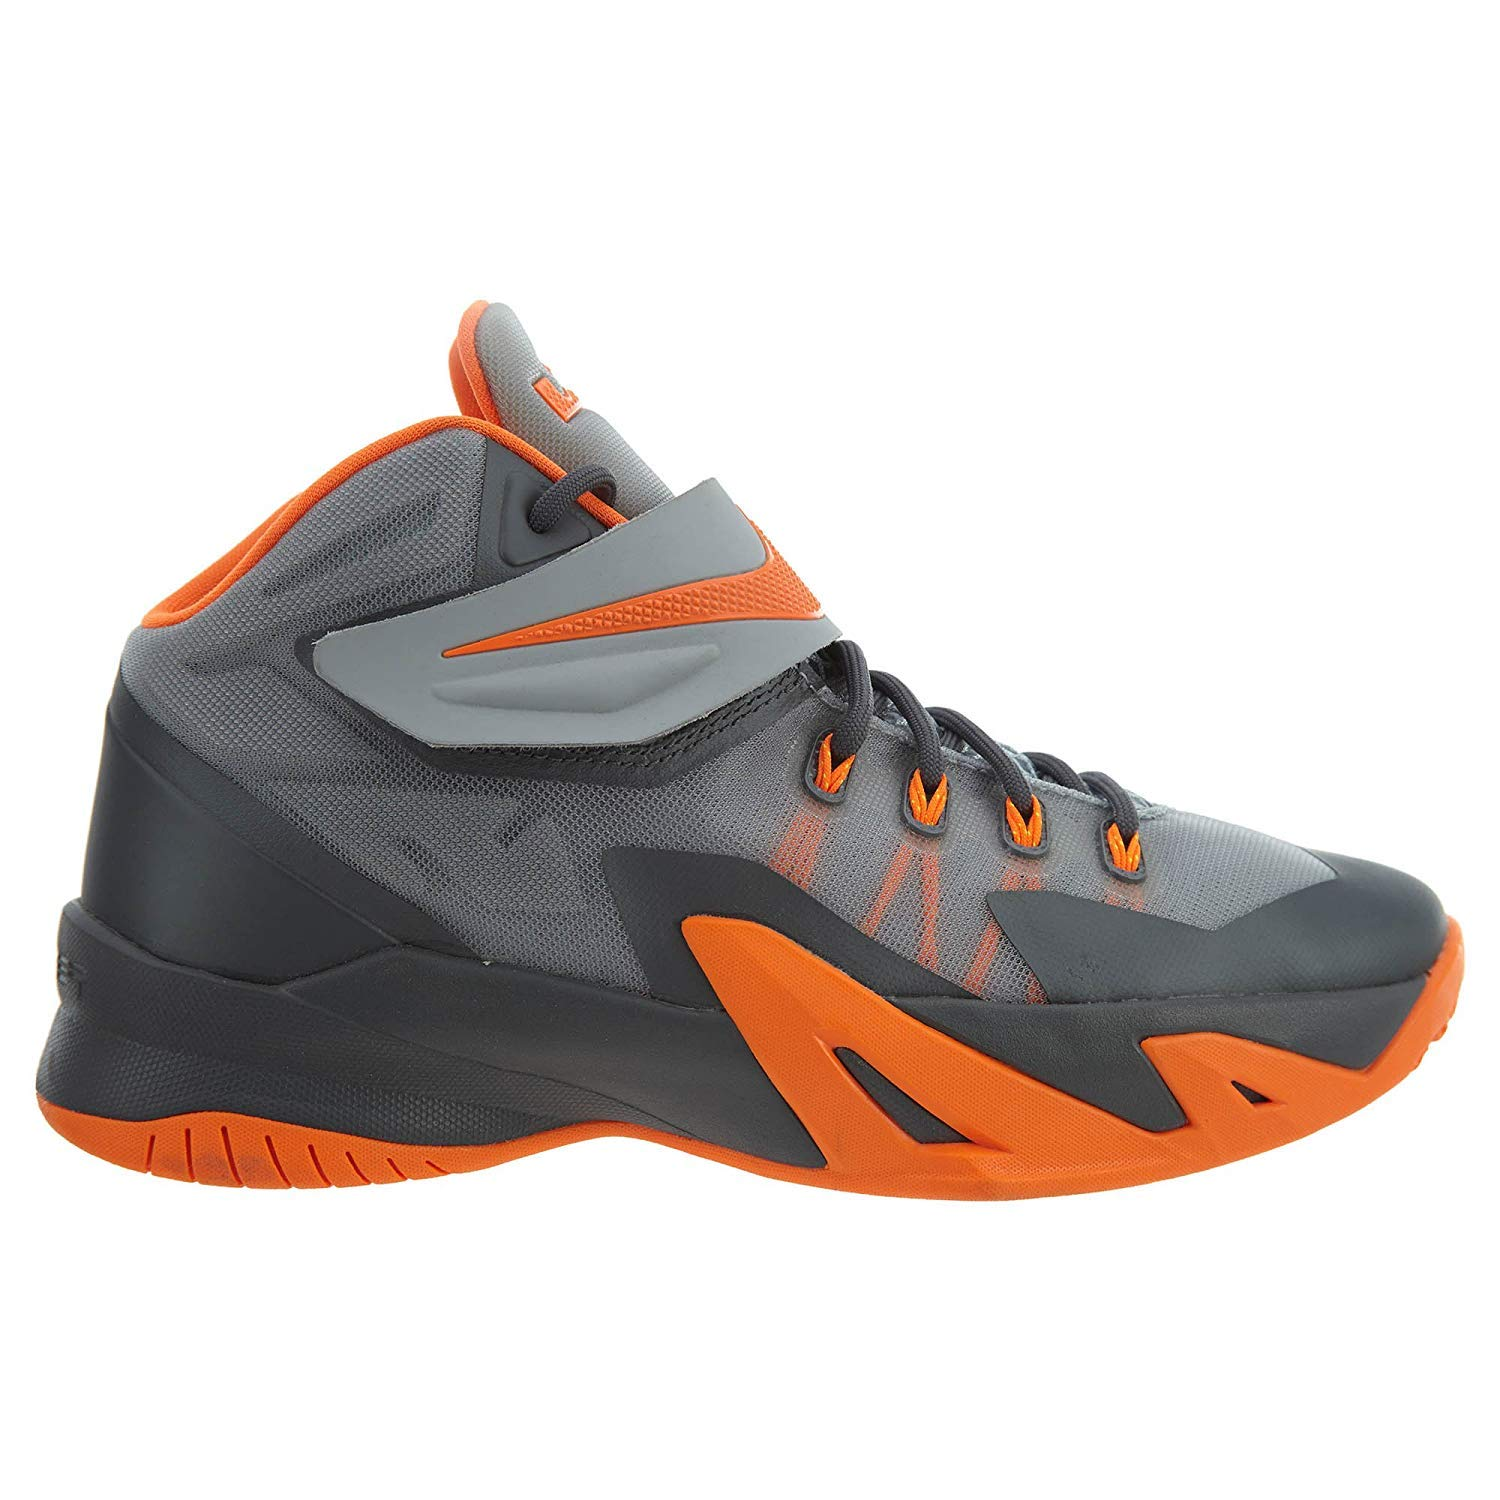 9cd3401d024 Soldier Viii Gs 8 Lebron James Youth Basketball Shoes 653645-010 (6y)   Amazon.co.uk  Shoes   Bags